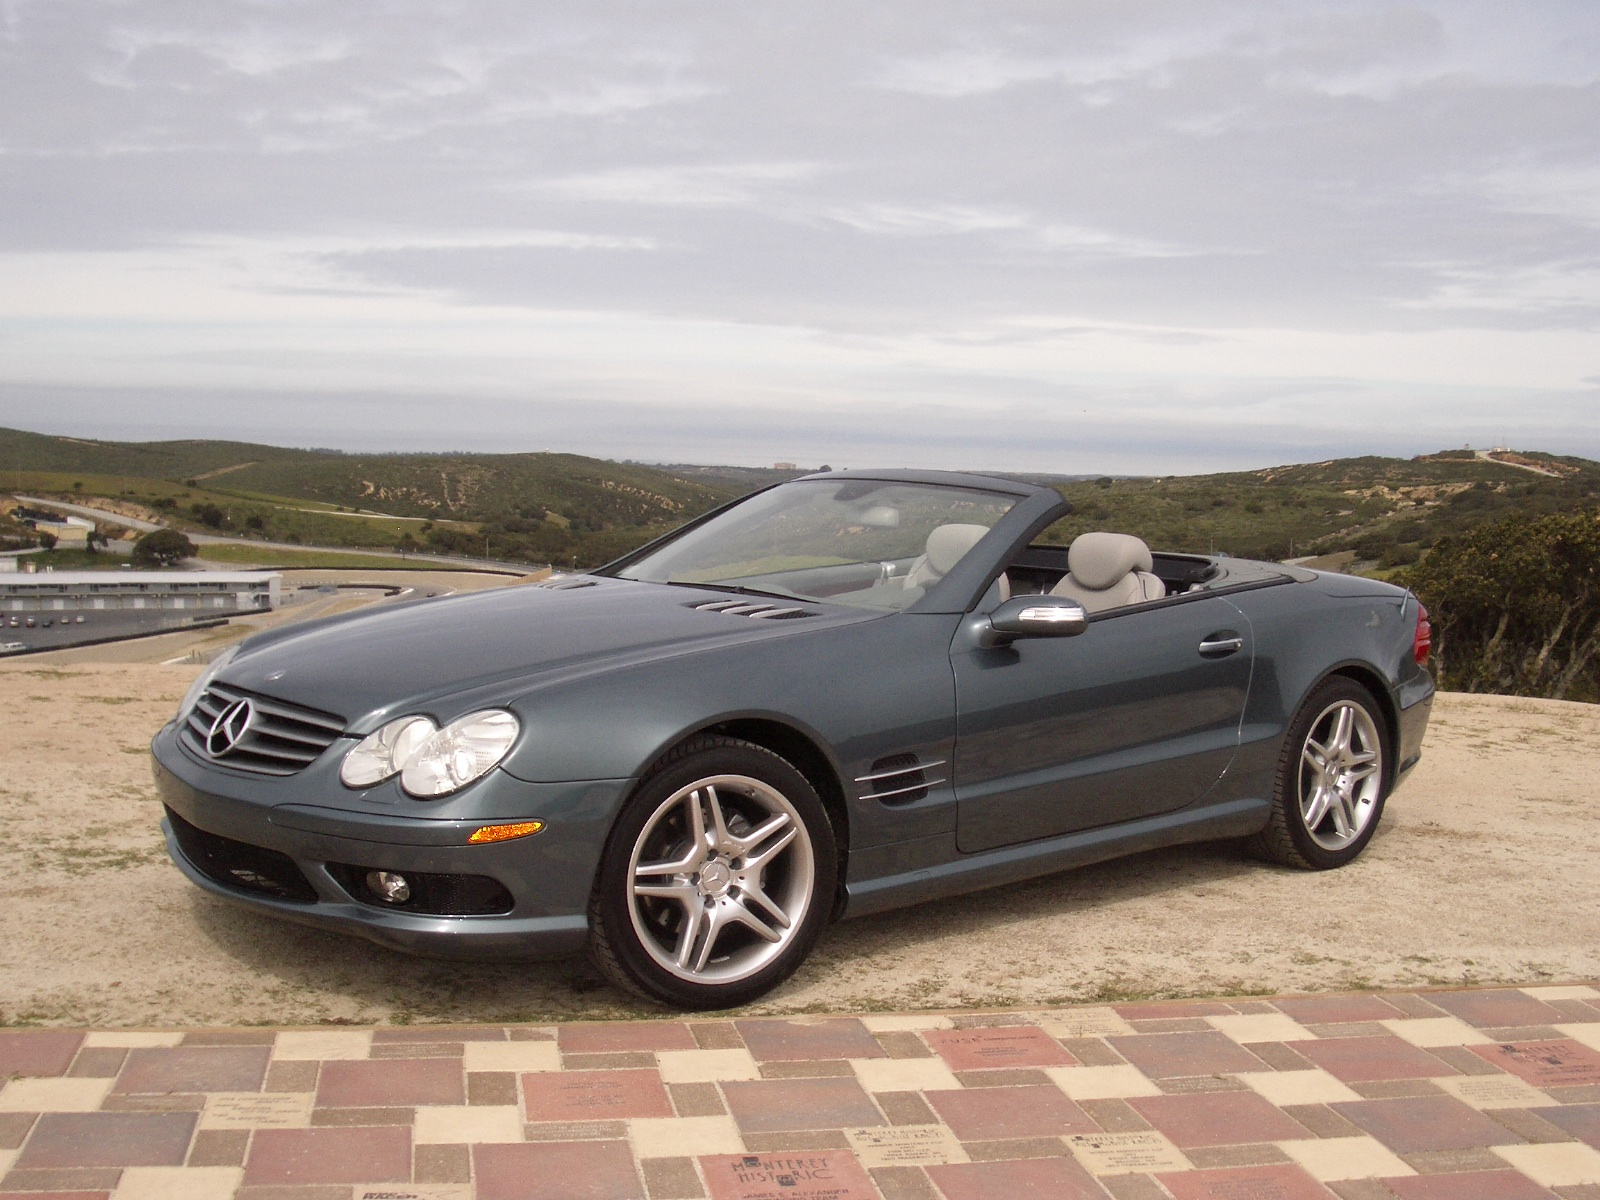 Mercedes benz sl 500 technical details history photos on for Mercedes benz 500sl parts